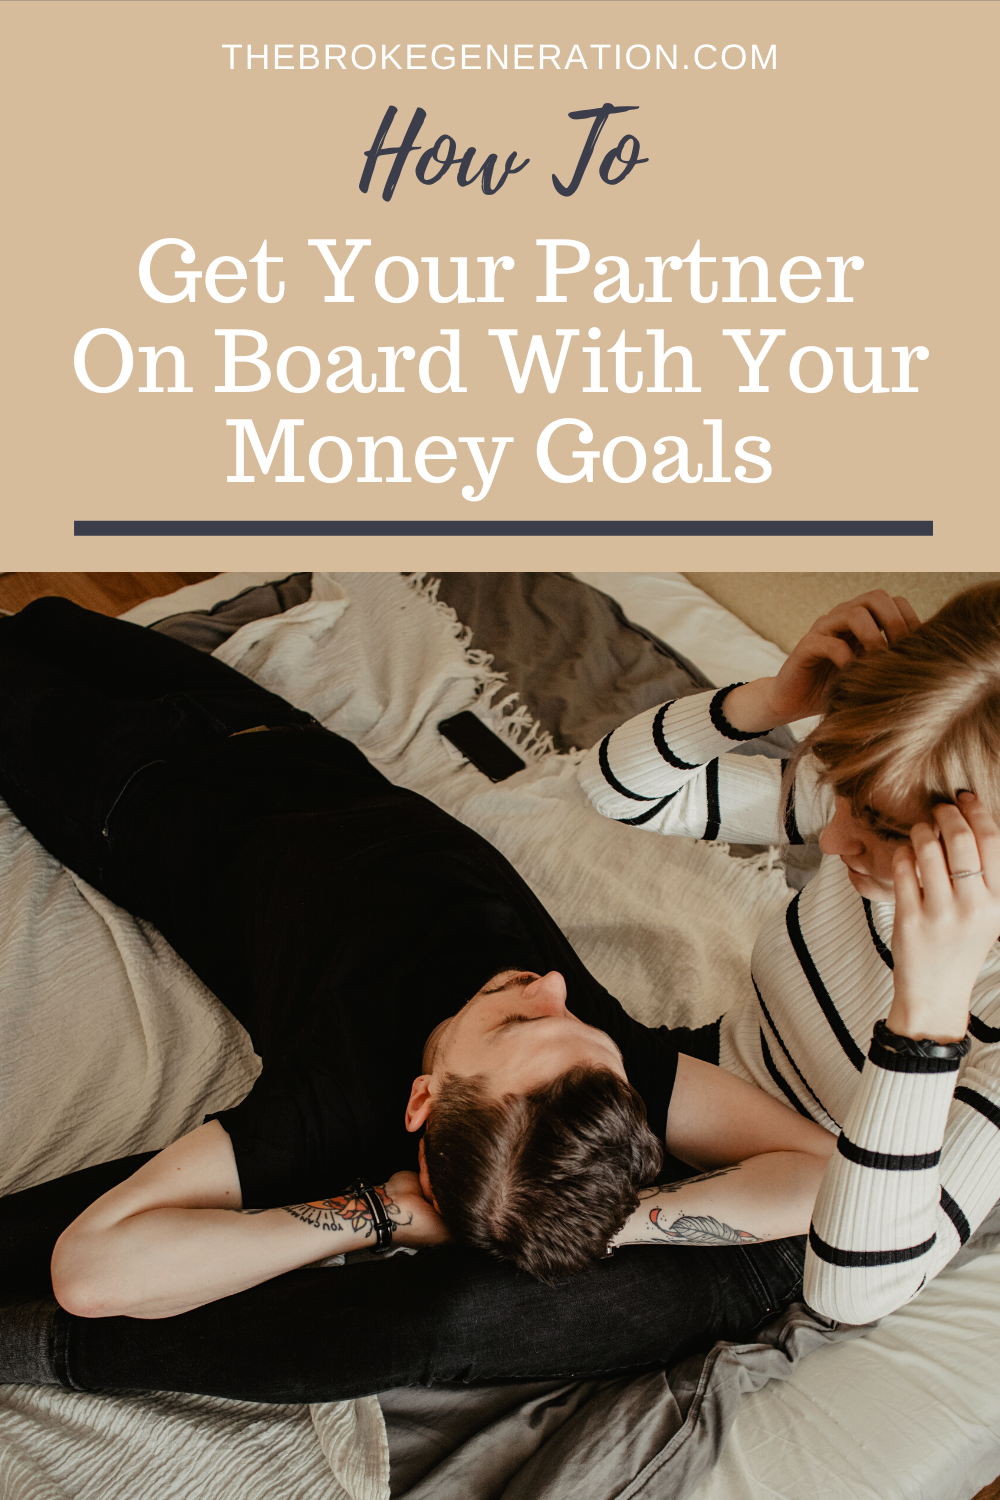 How to Get Your Partner On Board With Your Money Goals